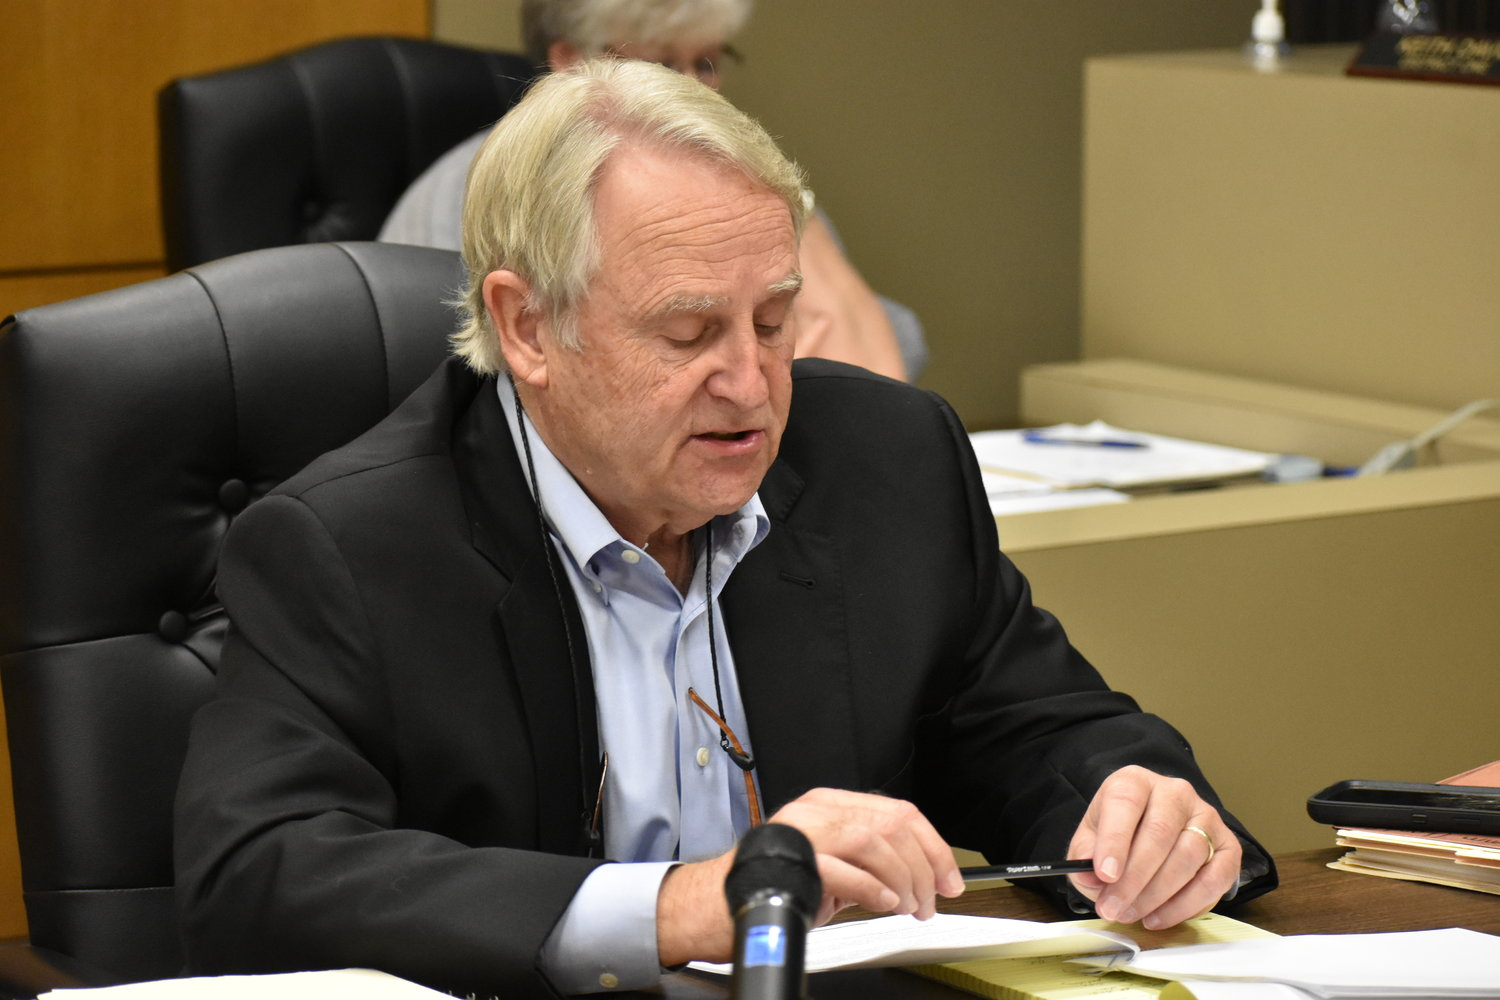 Eddie Jackson, the county attorney for the Walker County Commission, reads a letter at Monday''s meeting detailing how Republic Services will close the Pineview Landfill in 2025.